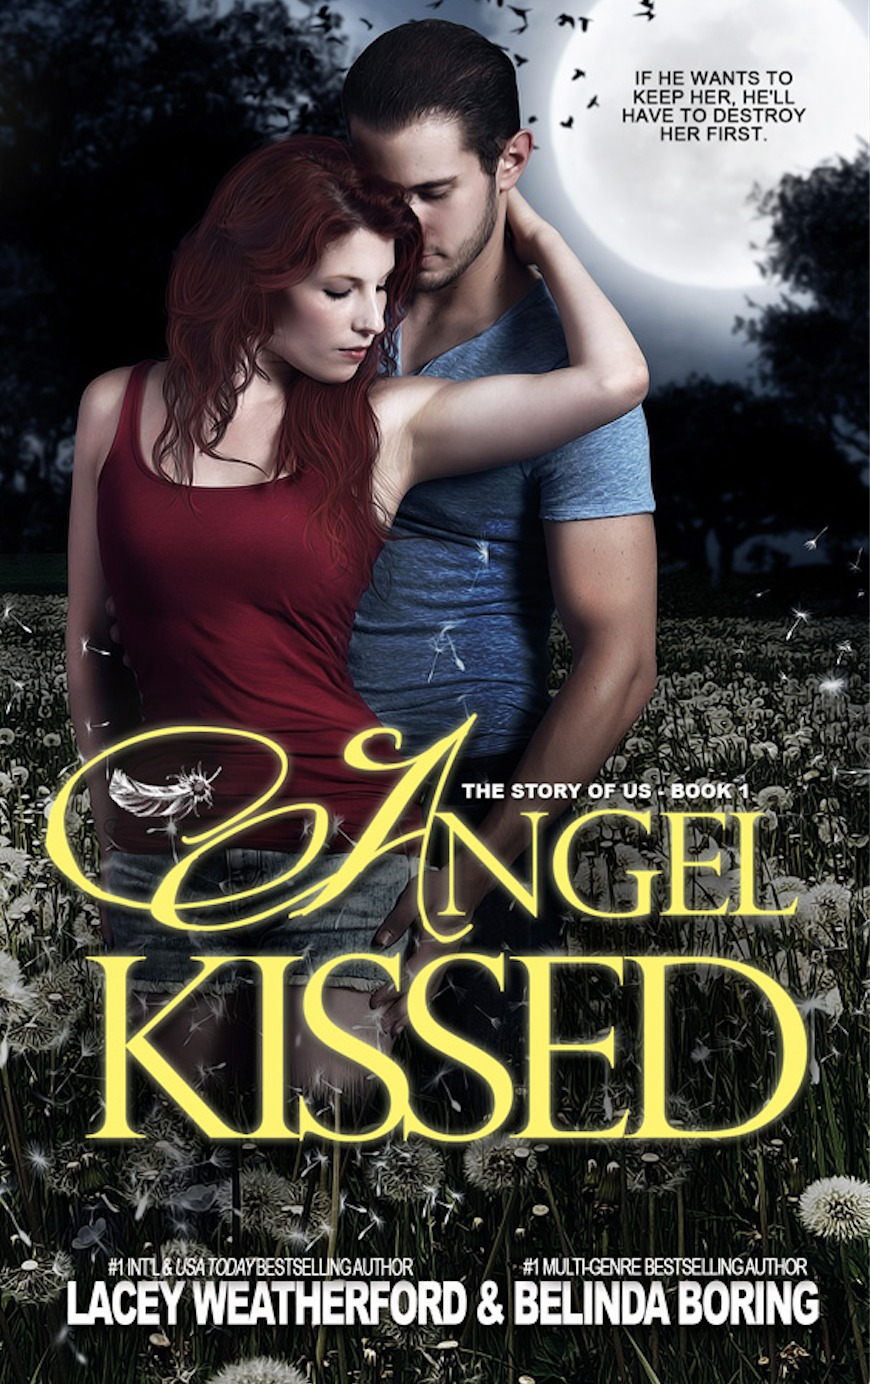 Angel Kissed (The Story of Us, #1) Lacey Weatherford